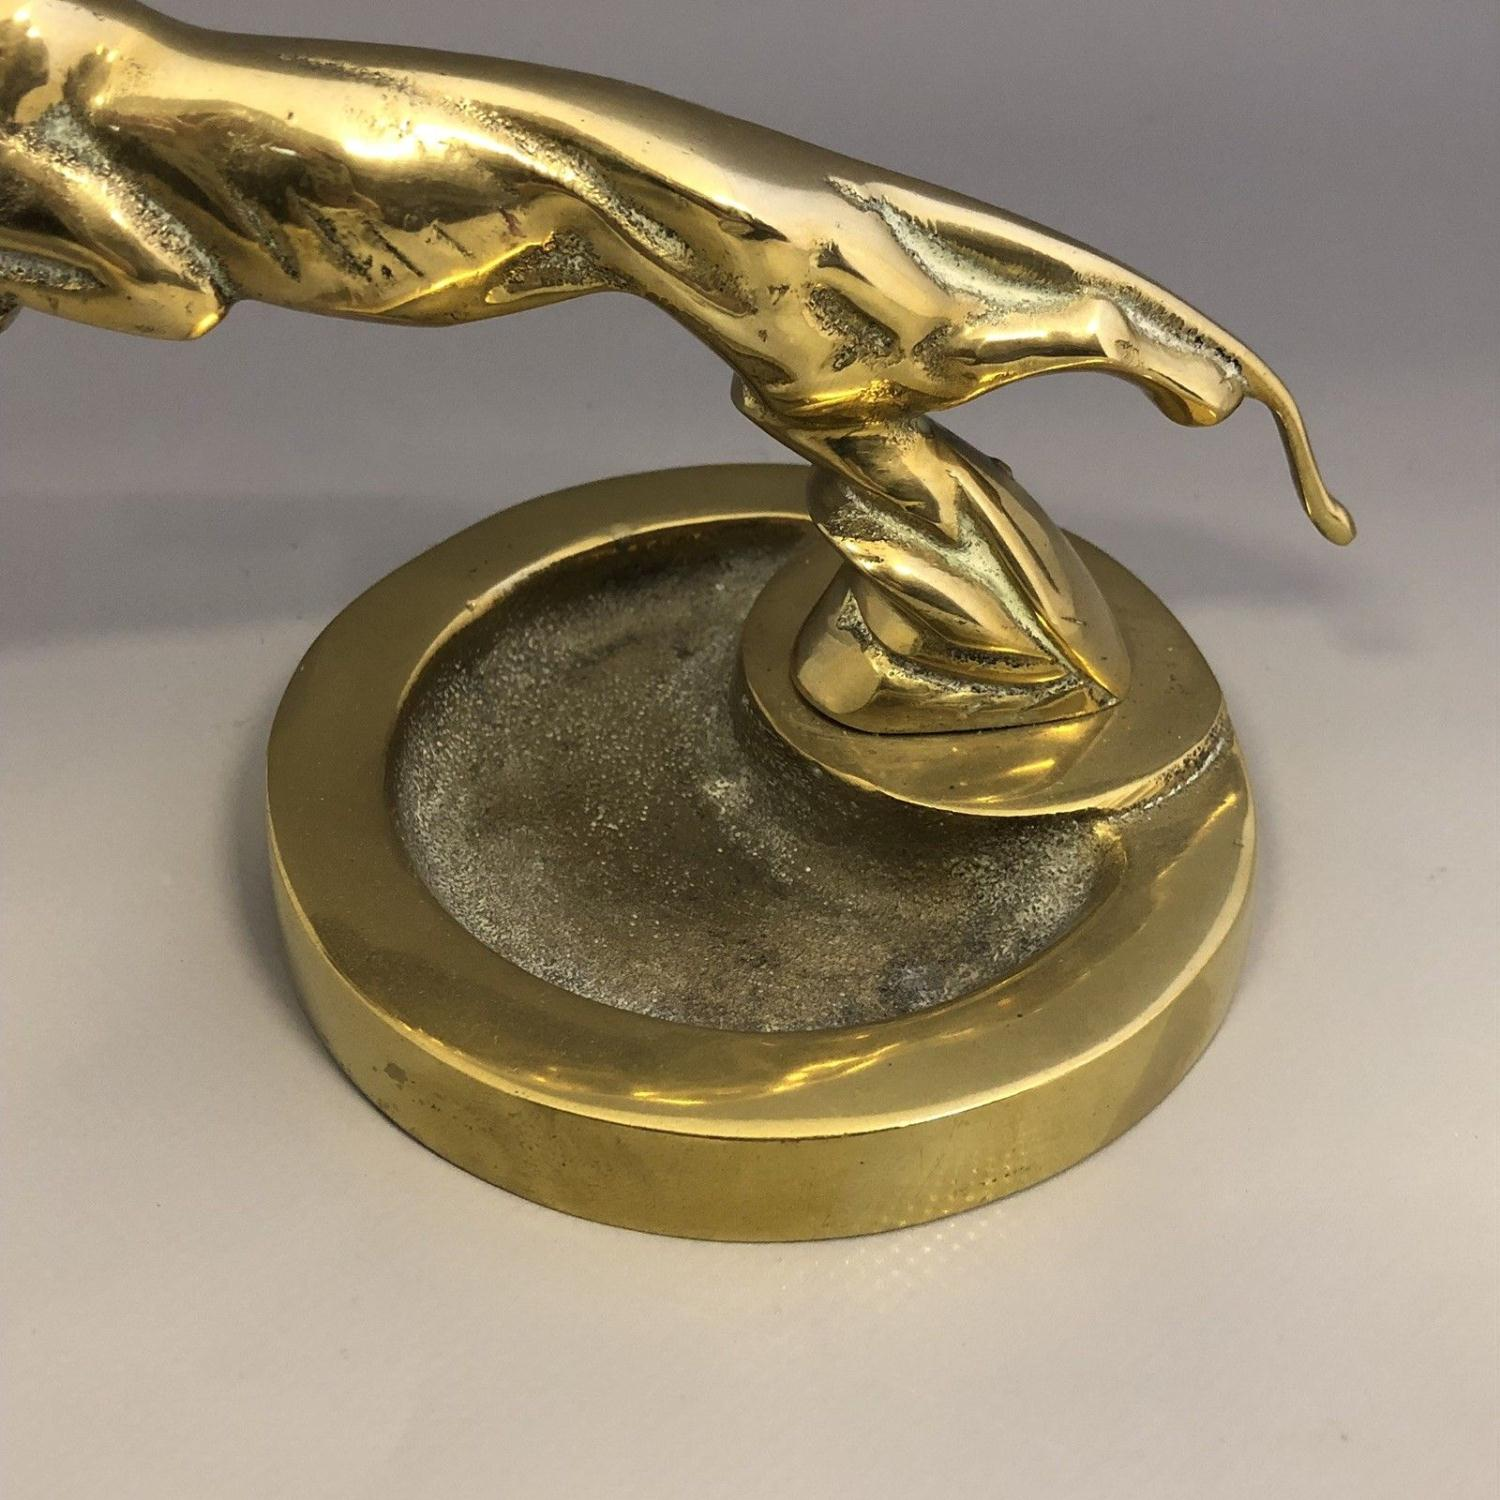 Lot 35 - Vintage cast brass ashtray with leaping jaguar mount car mascot